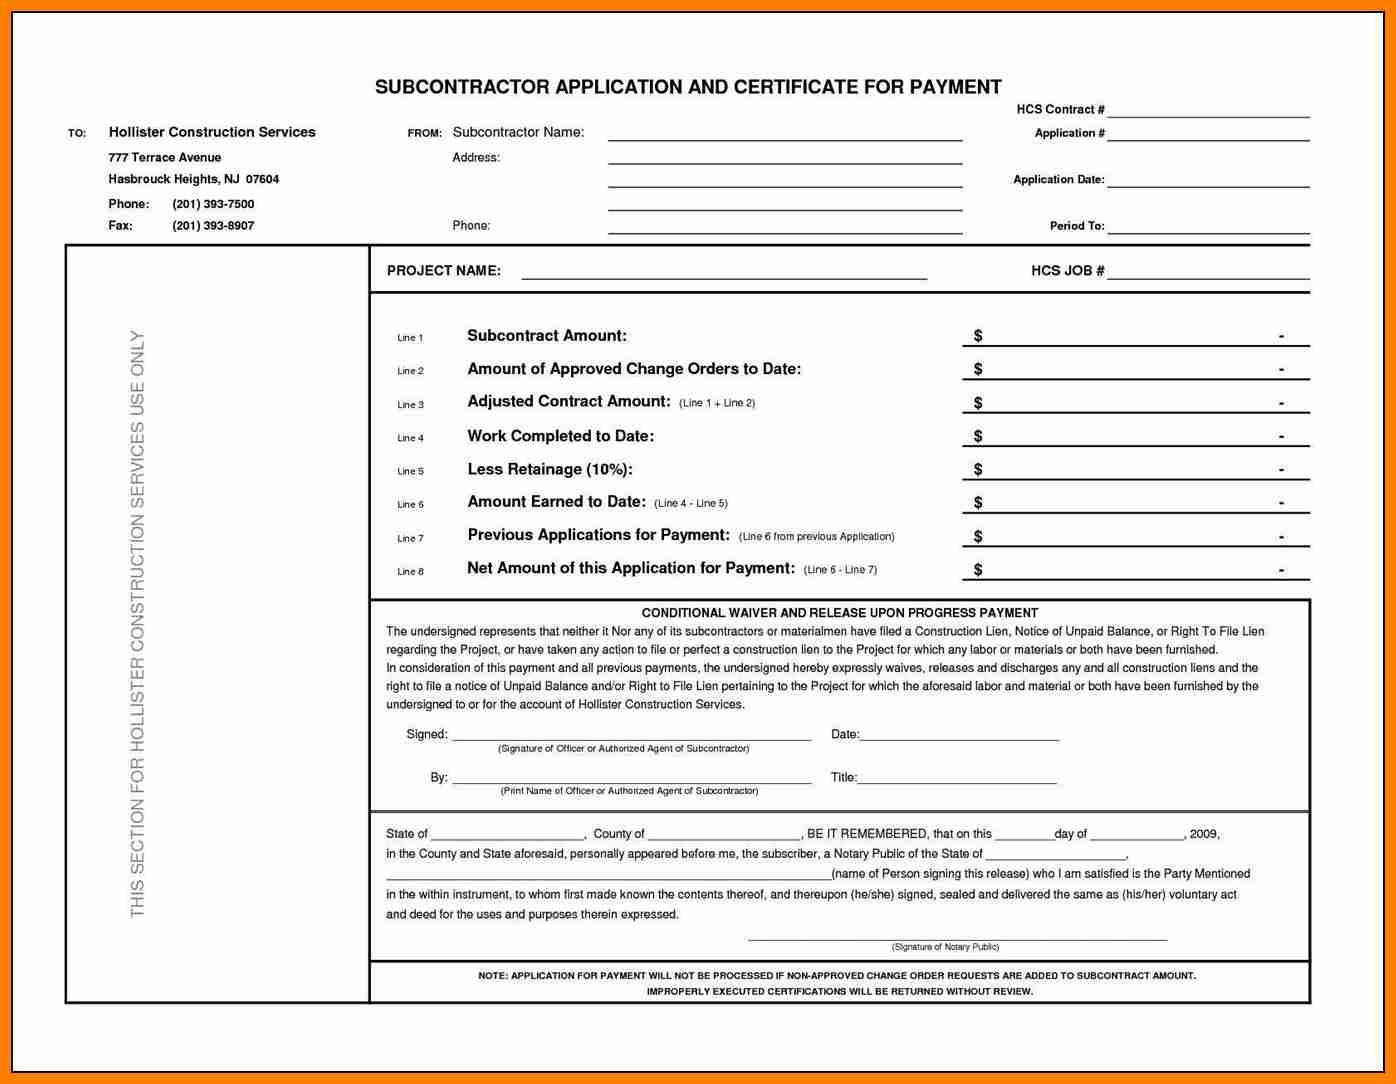 Certificate Of Payment Template  – Elsik Blue Cetane Throughout Certificate Of Payment Template